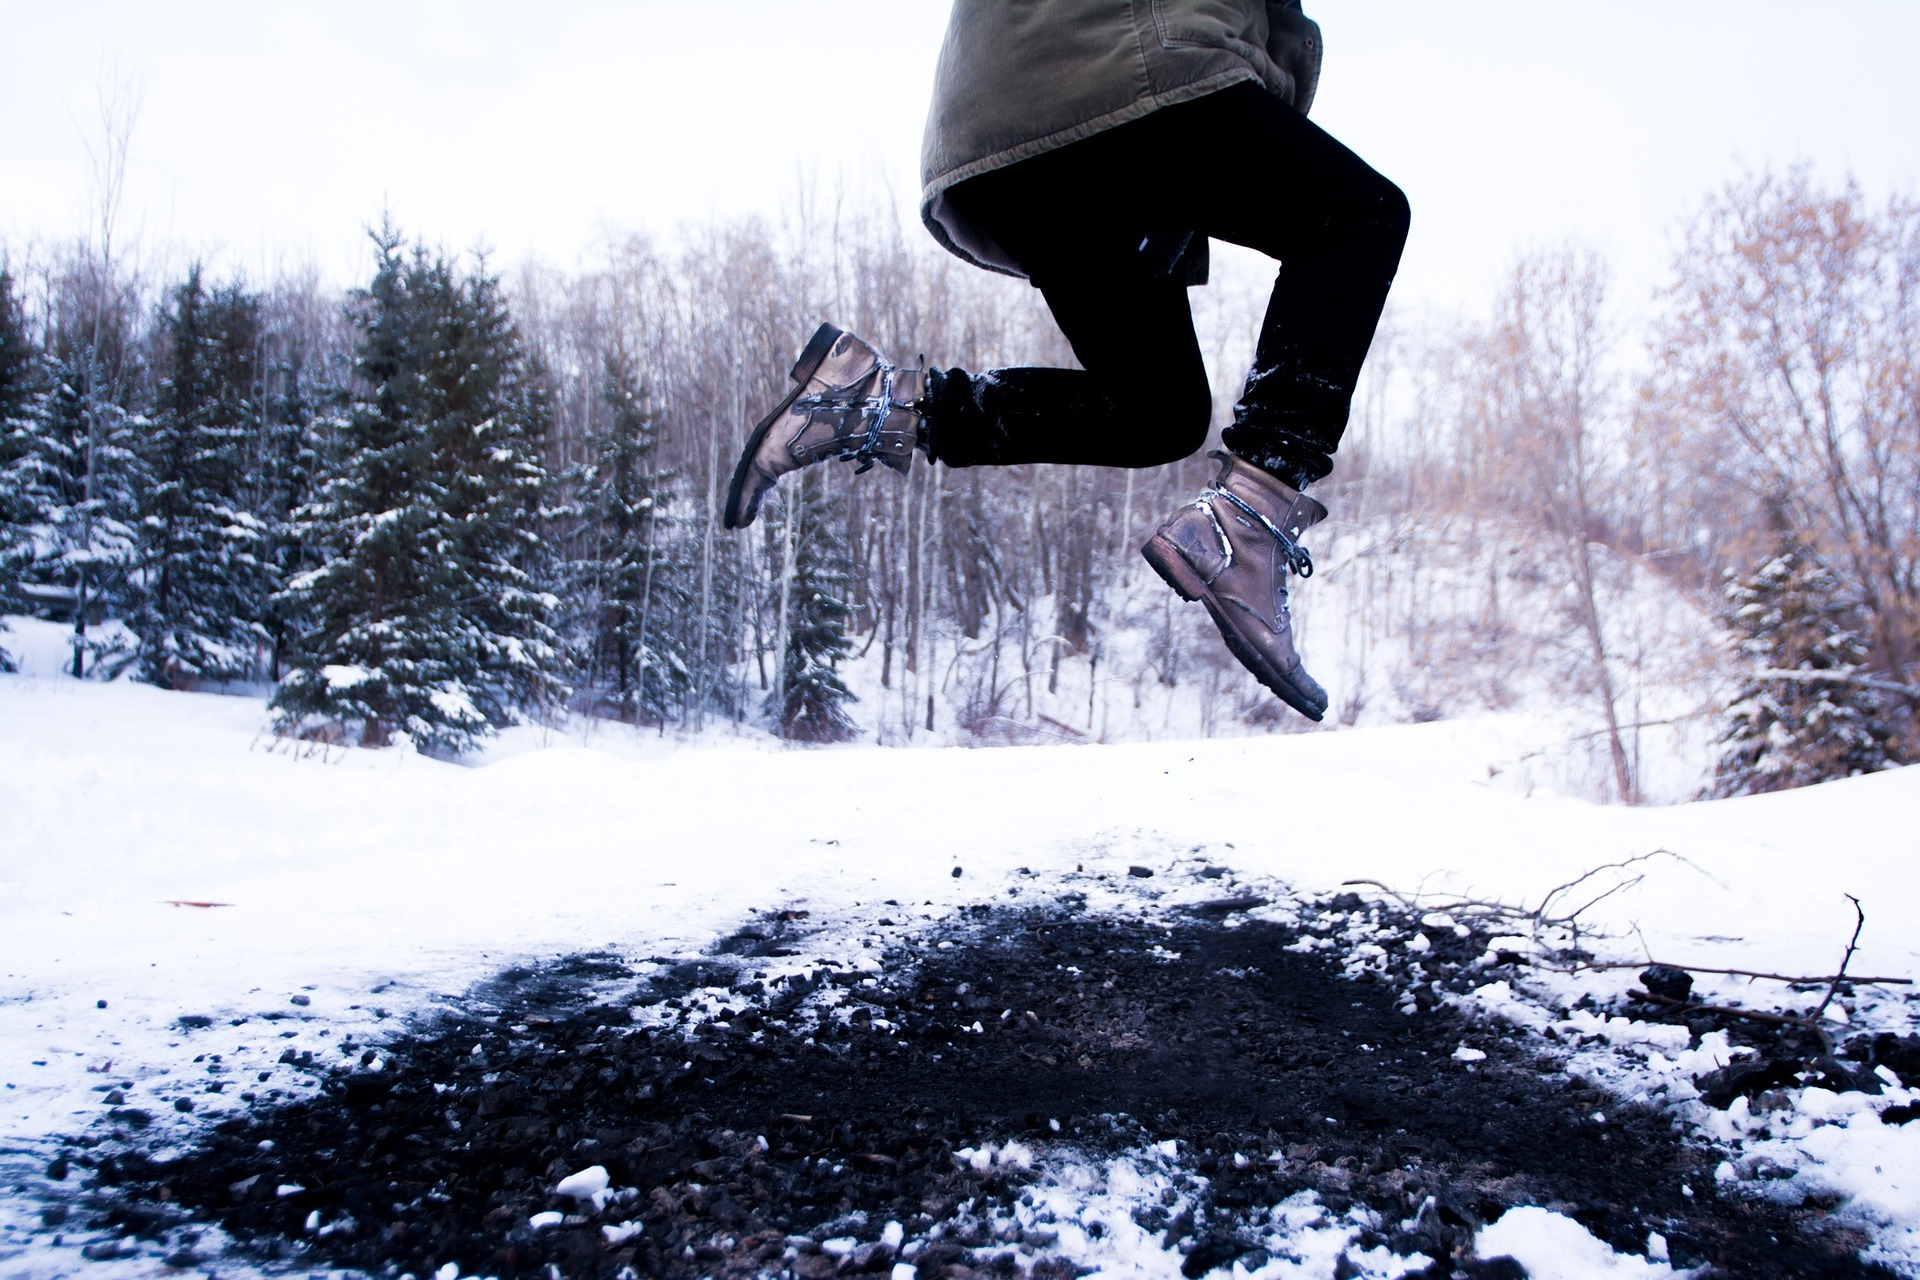 Leaping in the snow